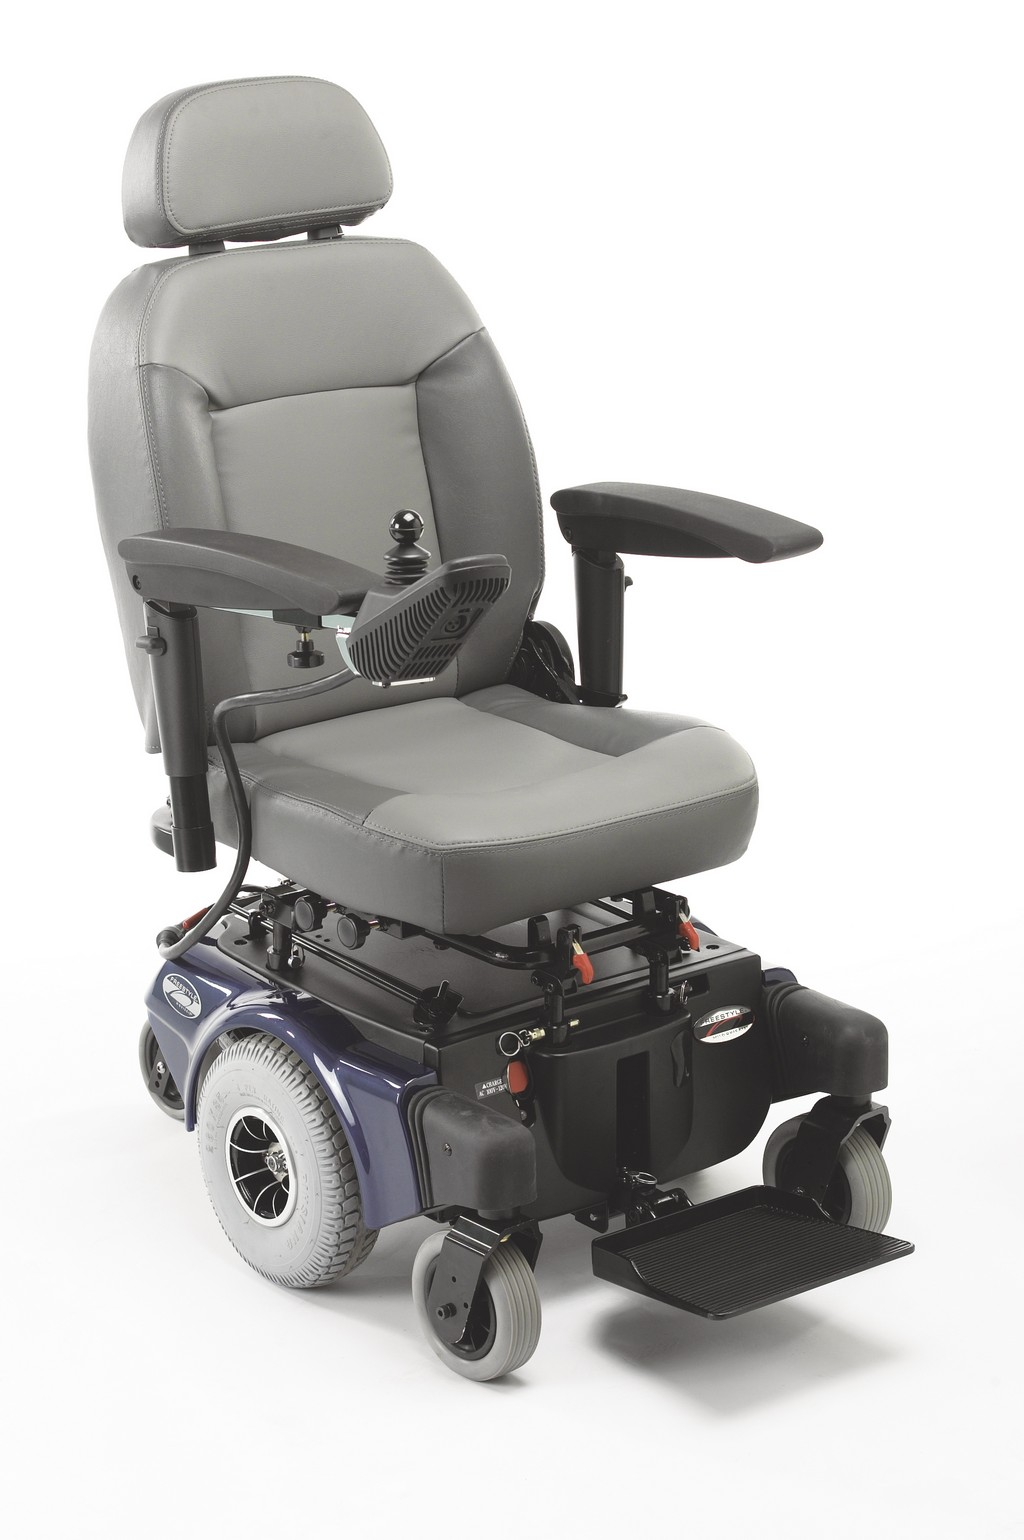 metro power wheel chair, renting power wheelchairs or scooters, foldable power wheelchair, bariatric power wheelchairs